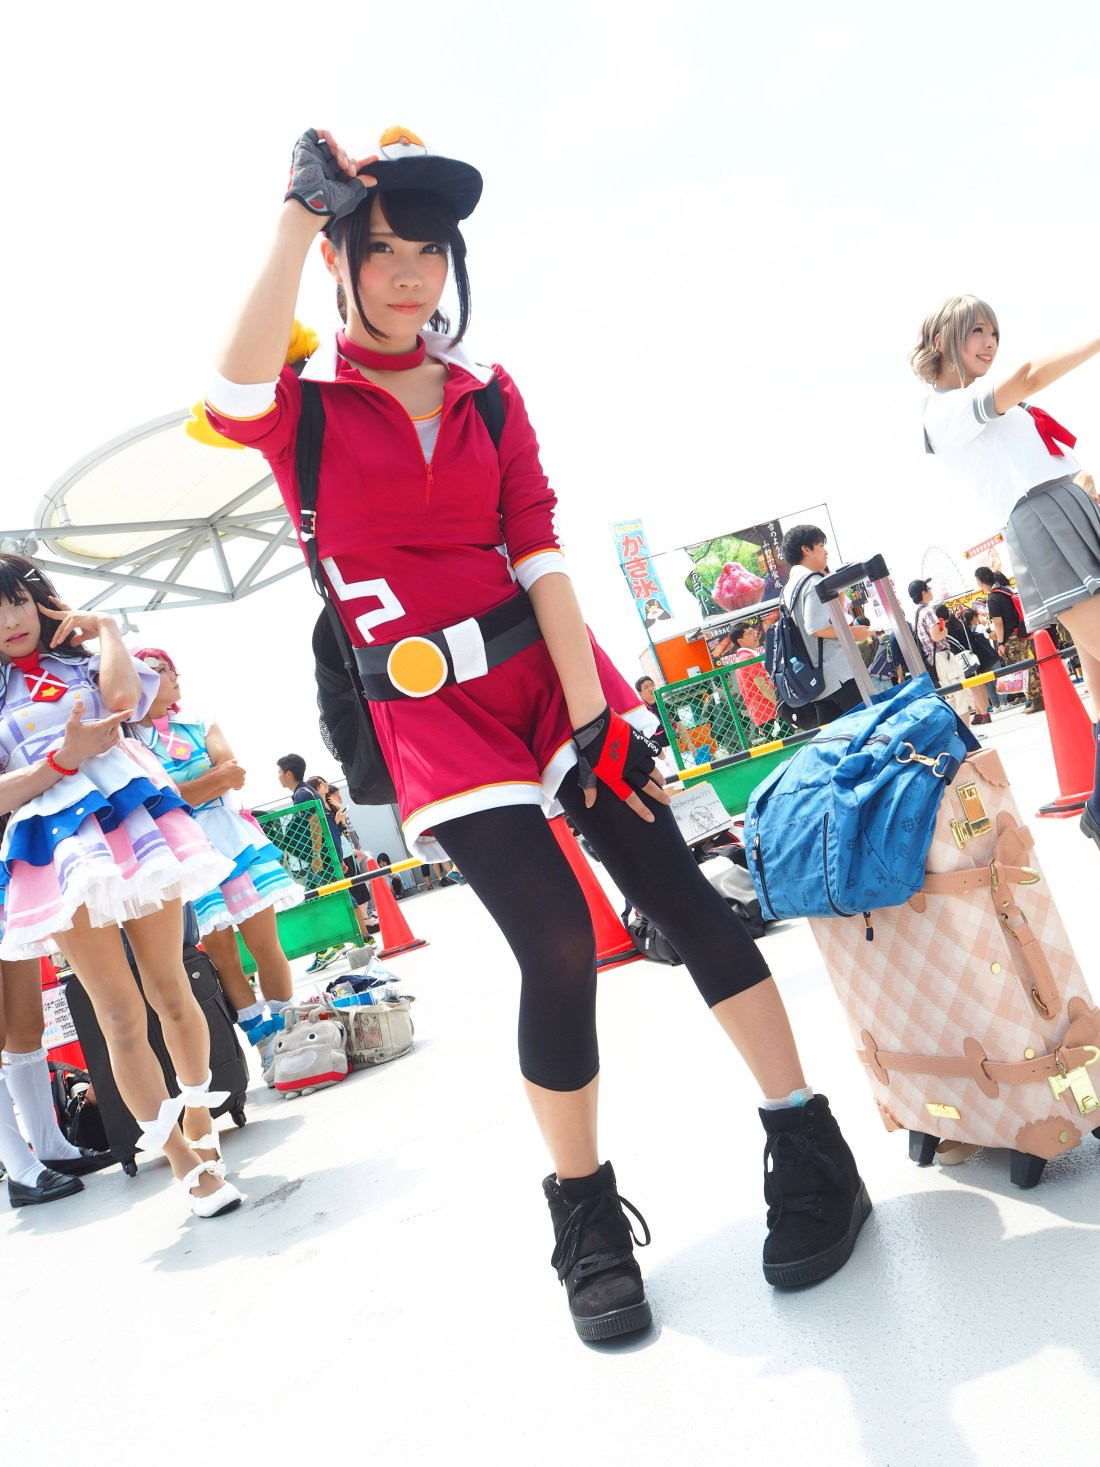 c90-pokemon-trainer-nairu